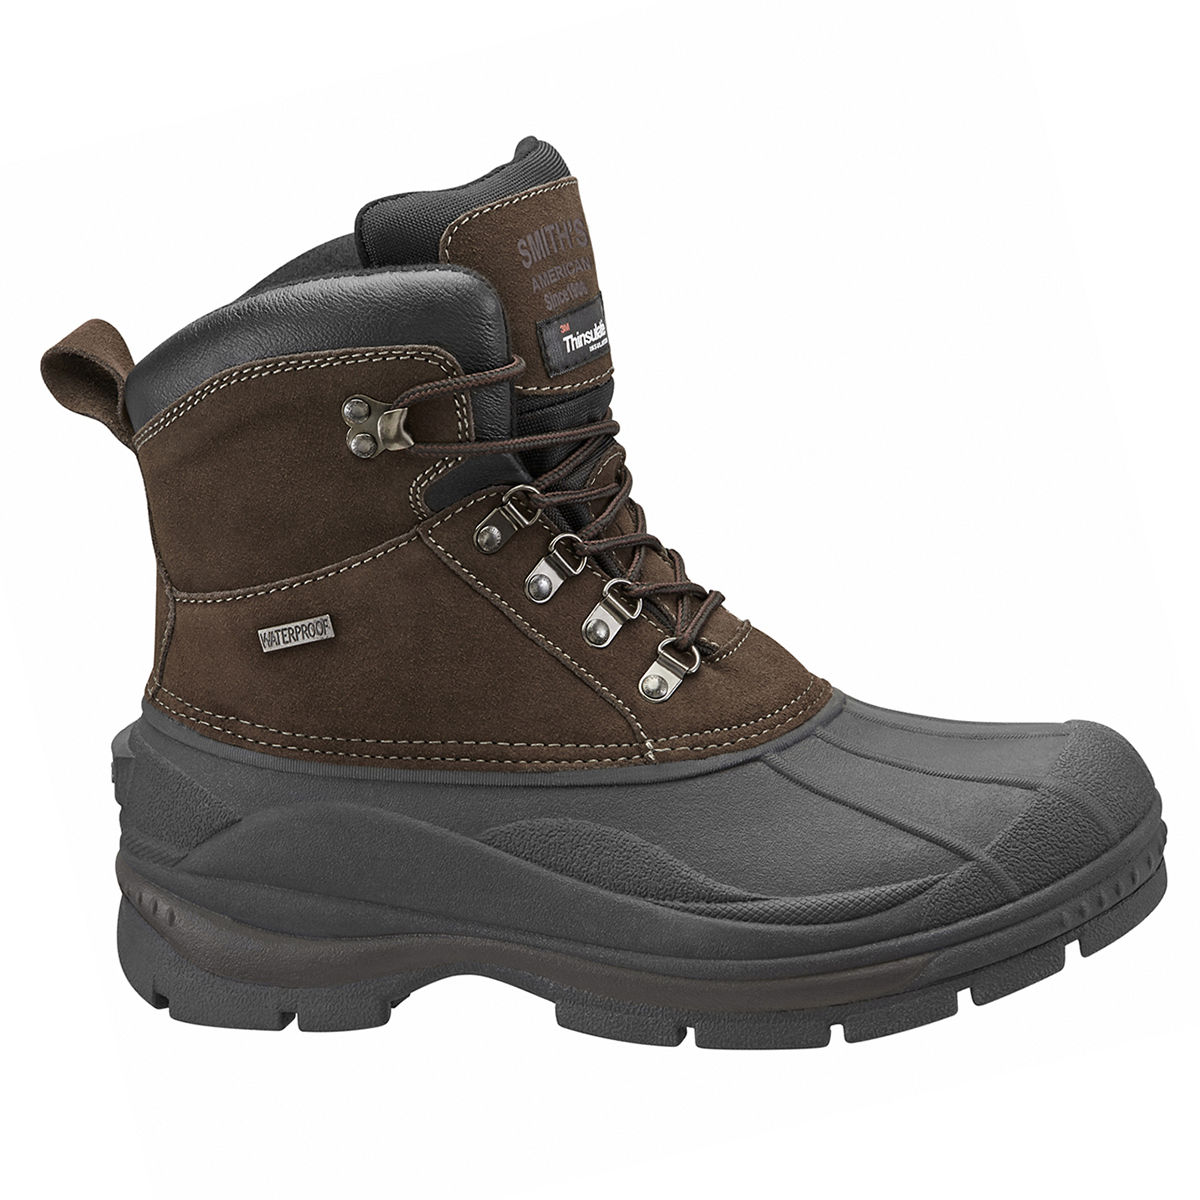 Smiths Mens Polar Boot